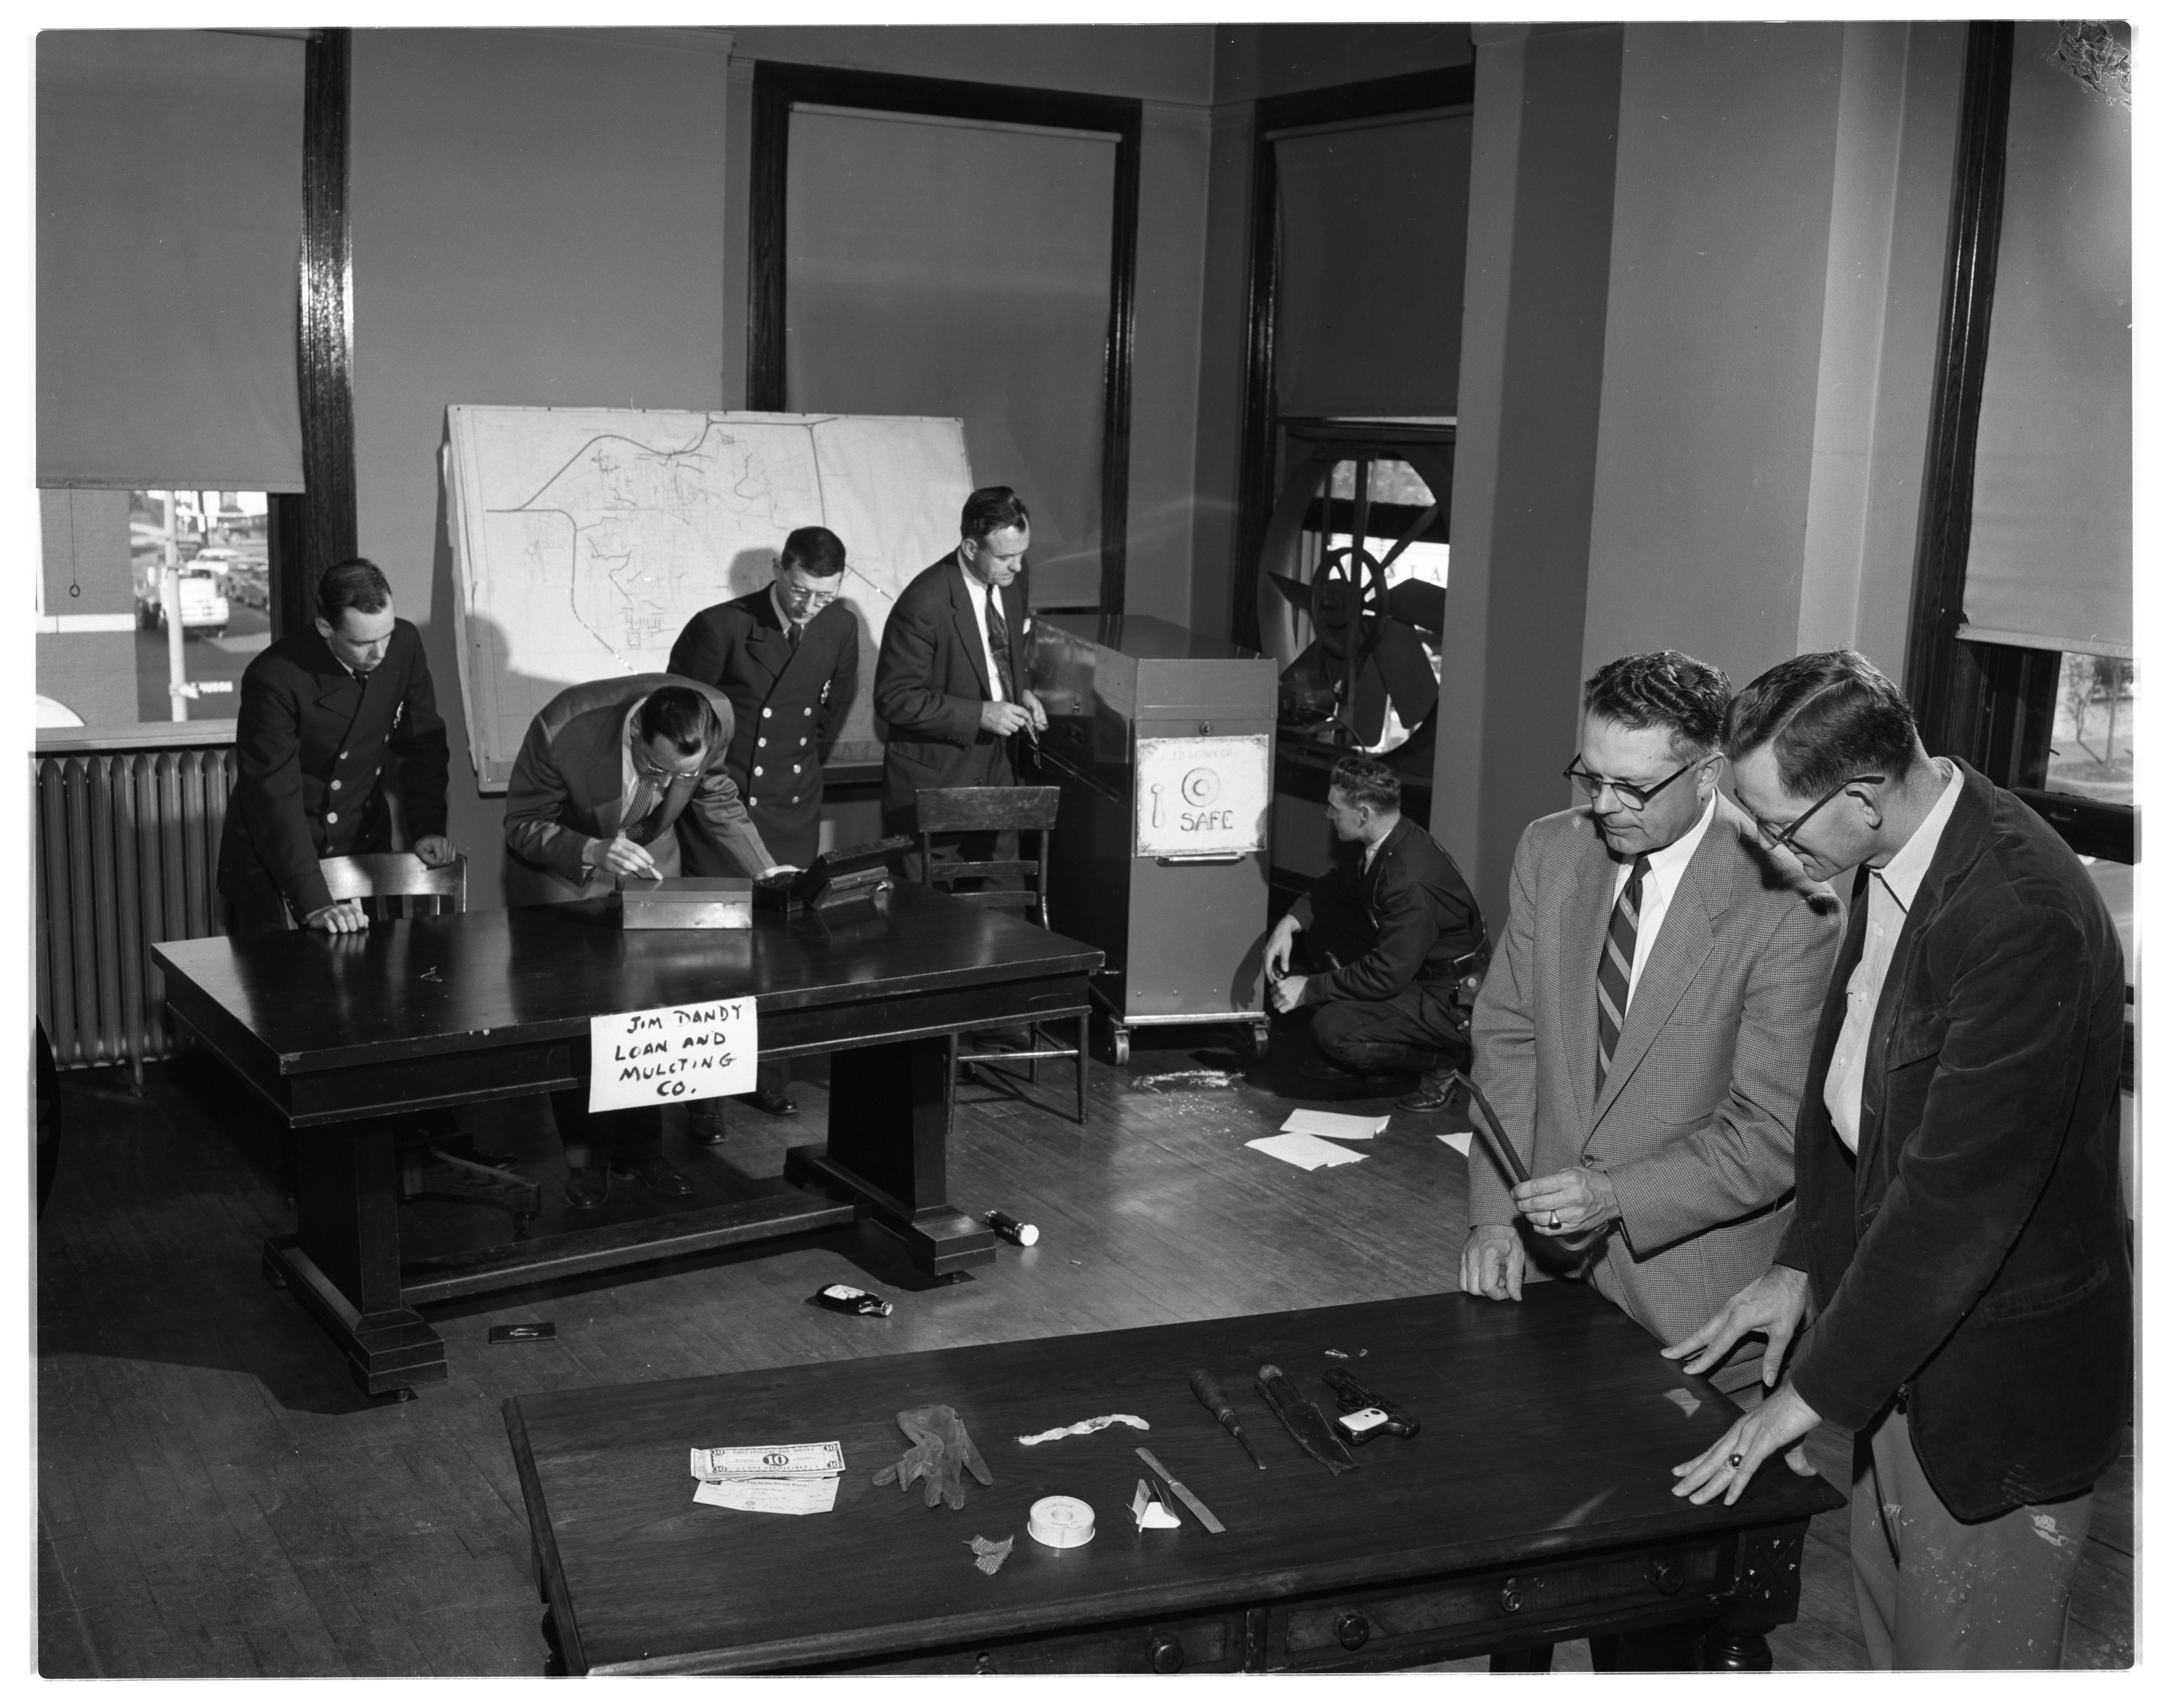 Ann Arbor Police Department Investigative Training at City Hall, October 1954 image